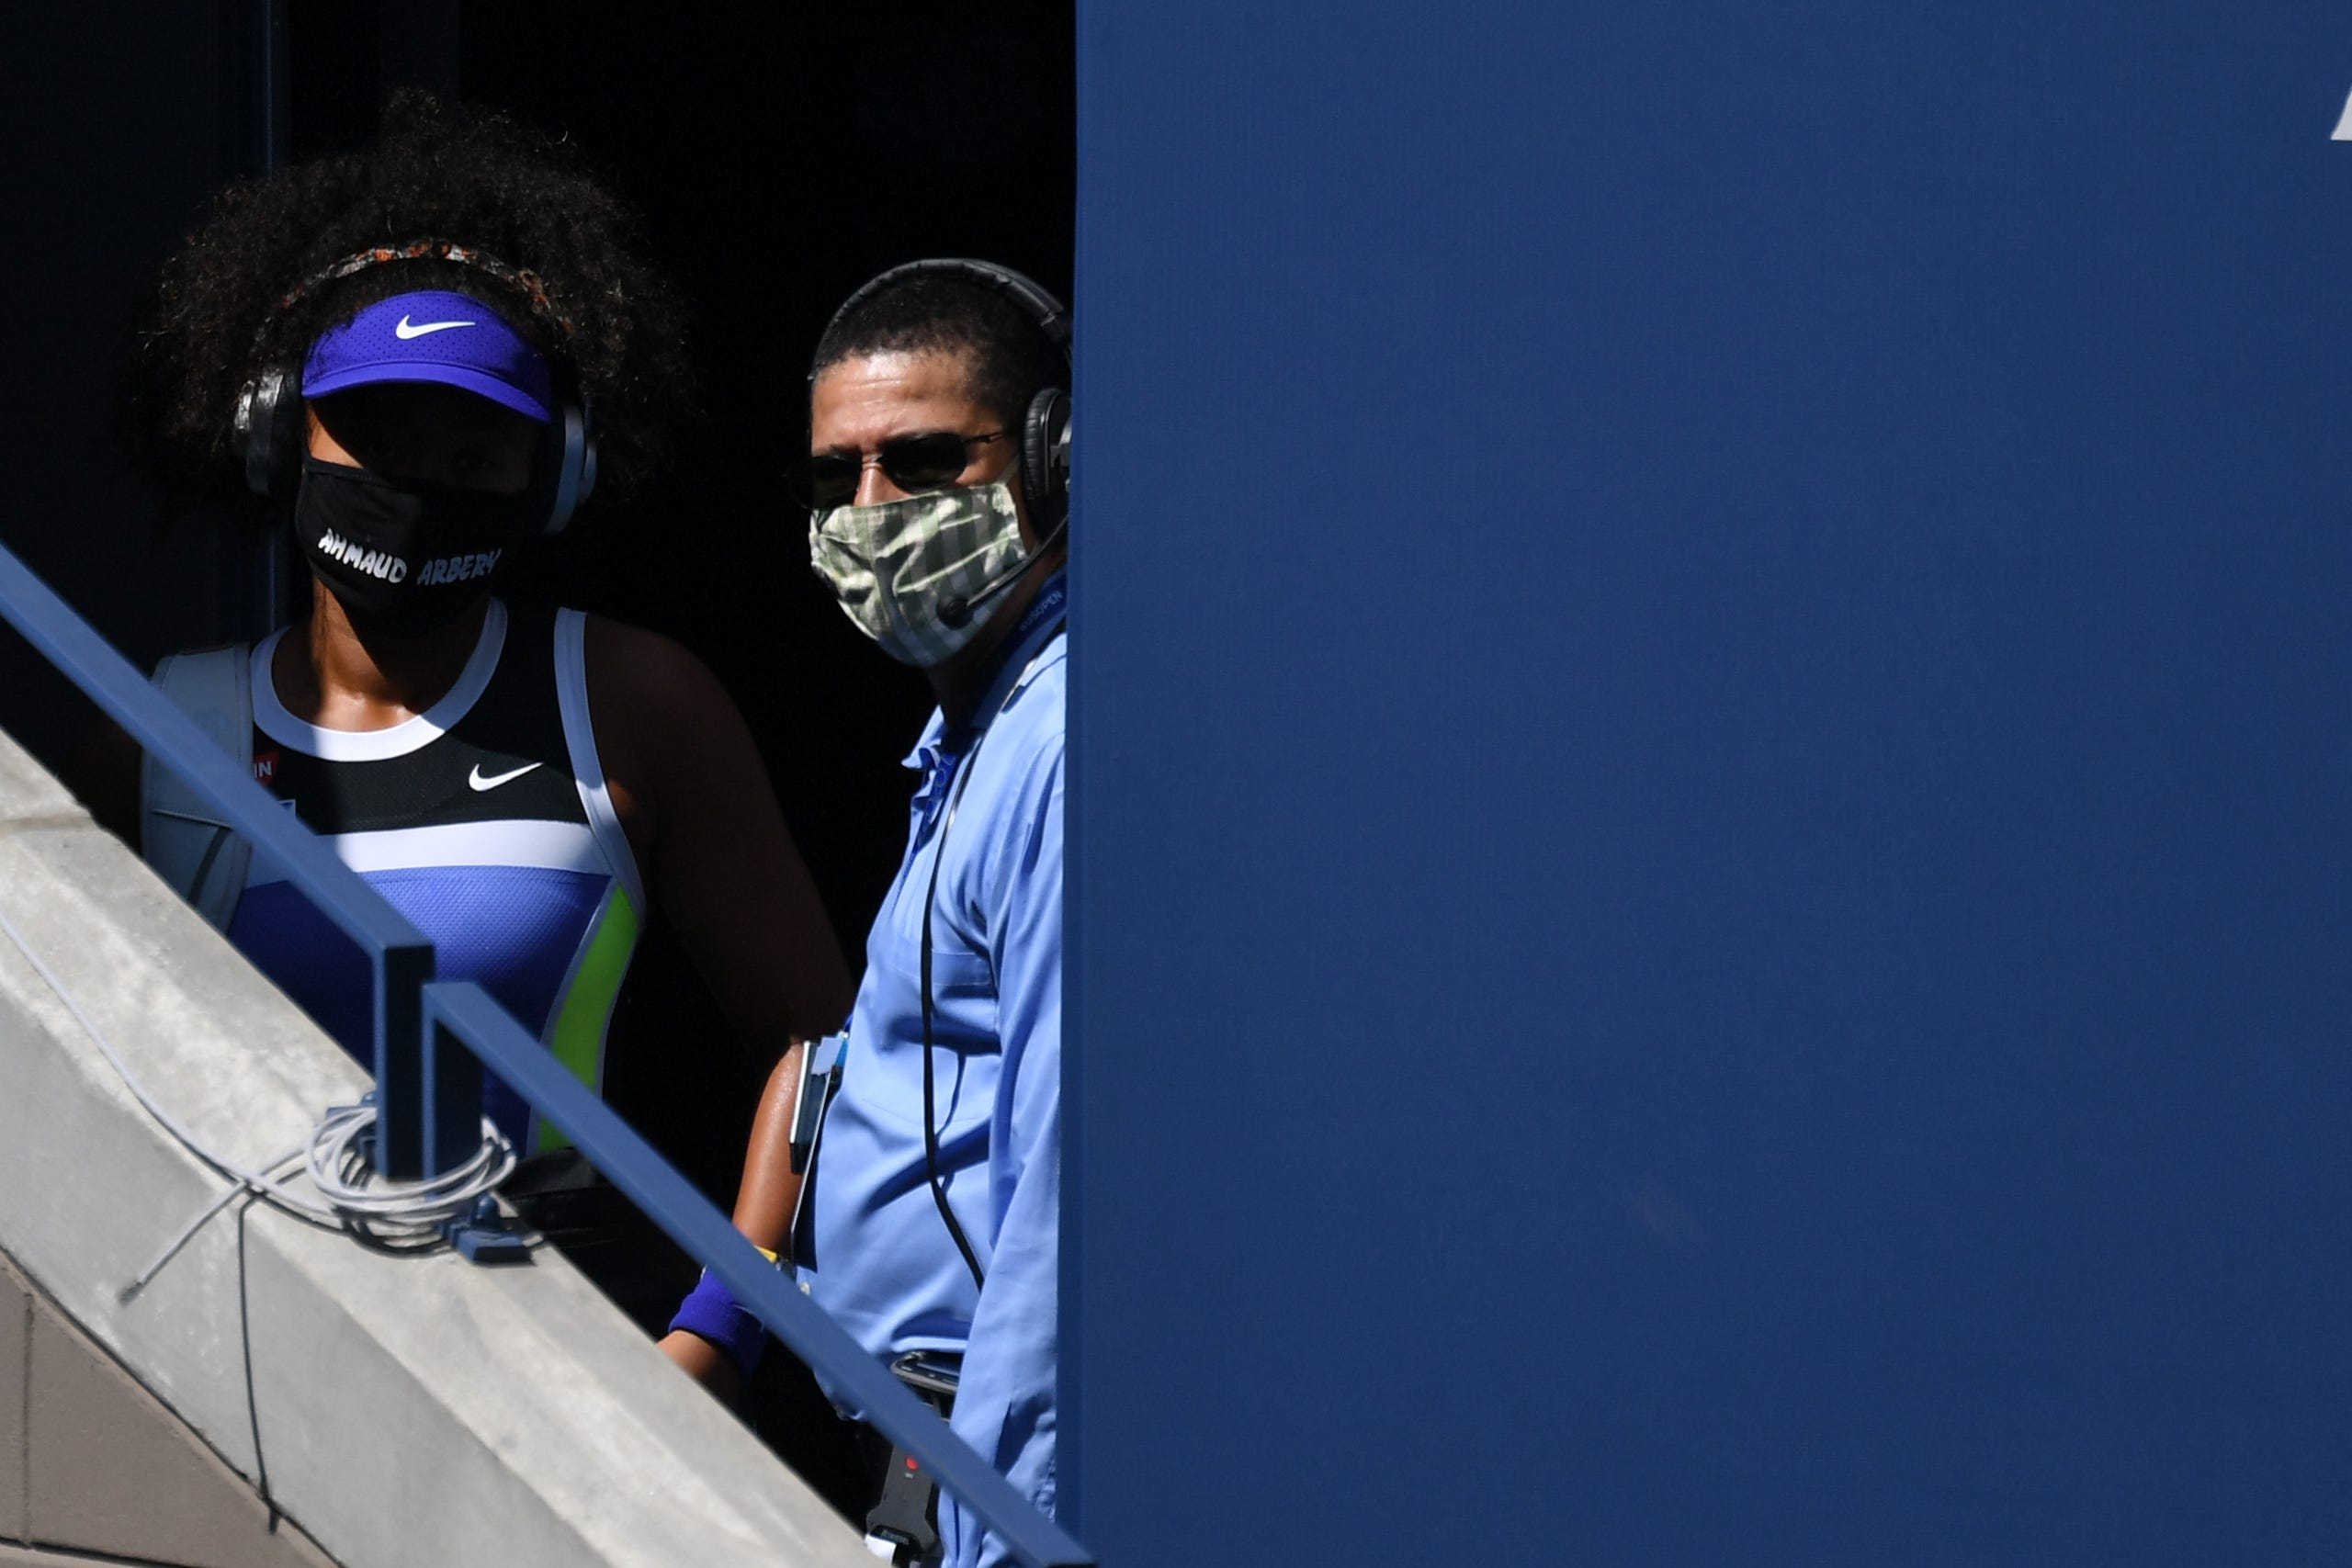 Naomi Osaka of Japan prepares to walk onto the court wearing a mask with the name of Ahmaud Arbery prior to her match on day five of the 2020 U.S. Open tennis tournament at USTA Billie Jean King National Tennis Center on Sept. 4, 2020. Osaka became known for her masks honoring victims of police brutality in the US.